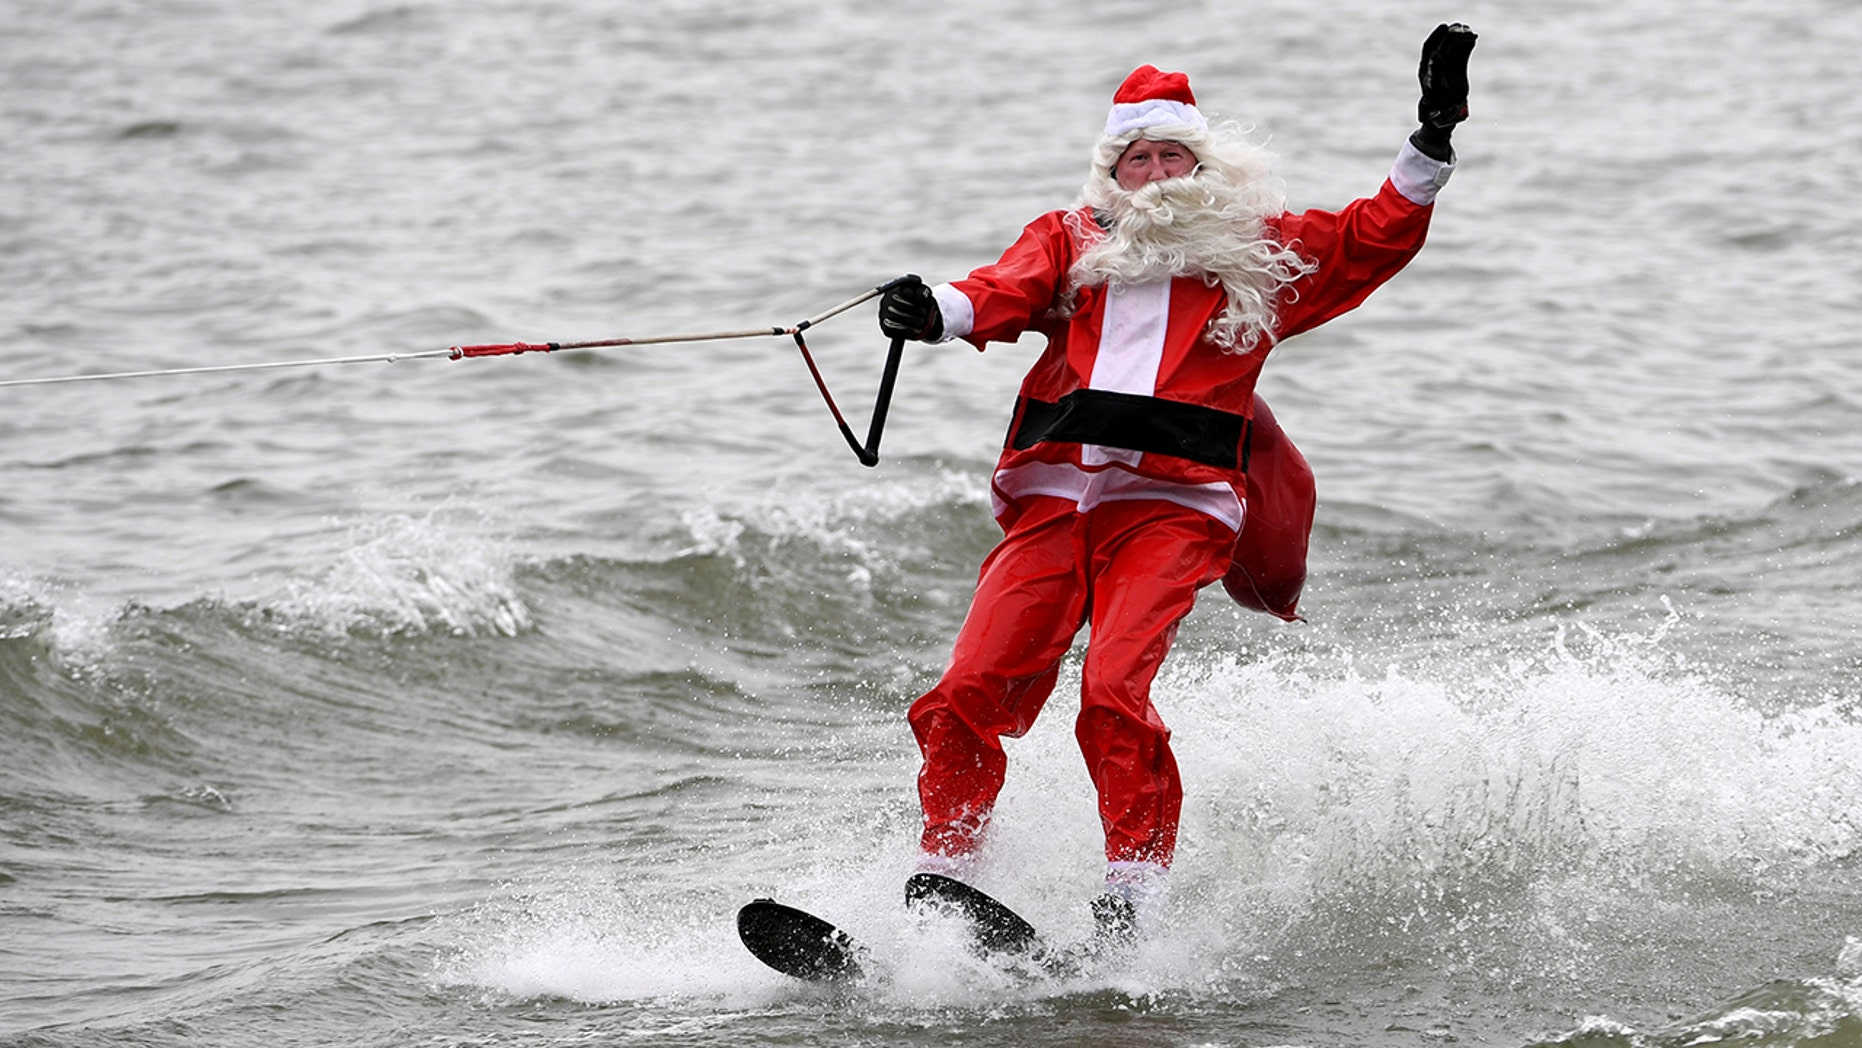 A Canadian government website claims that global warming is forcing Santa Claus to relocate his village to the South Pole.